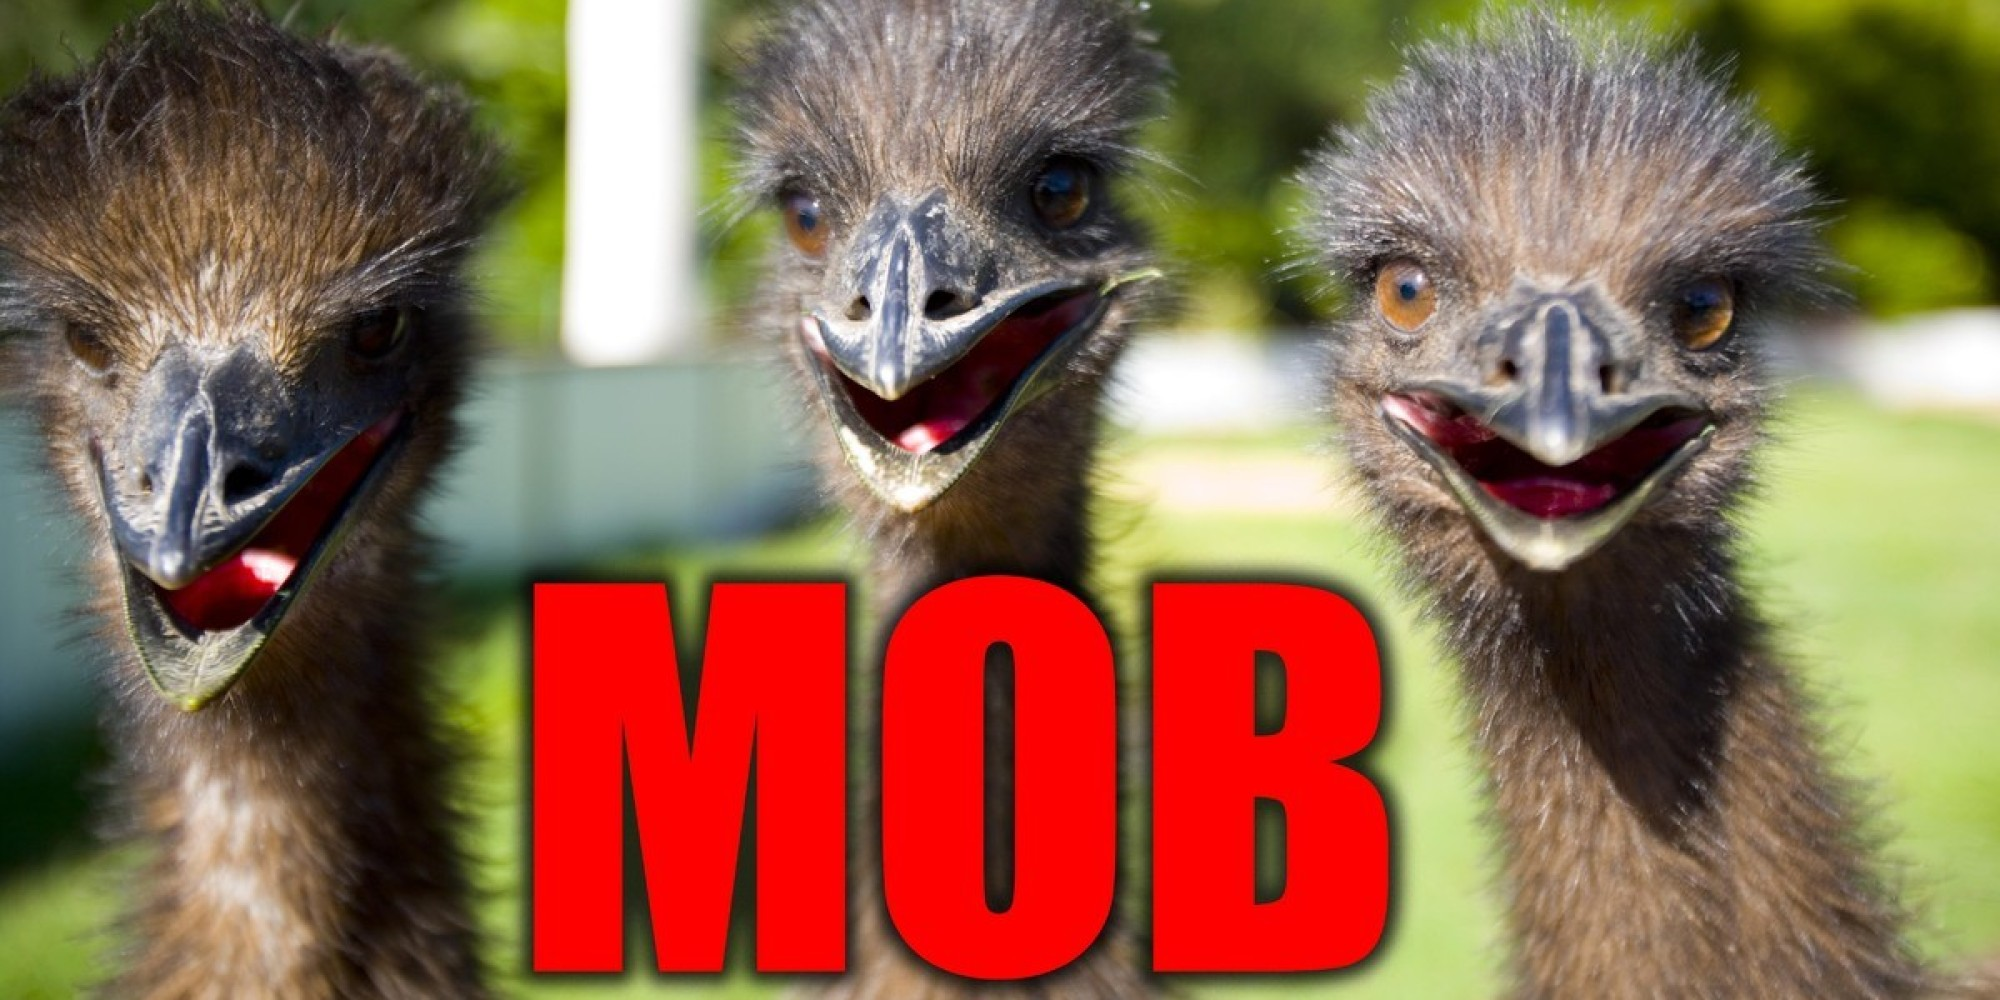 These Are The 19 Weirdest Names For Groups Of Animals